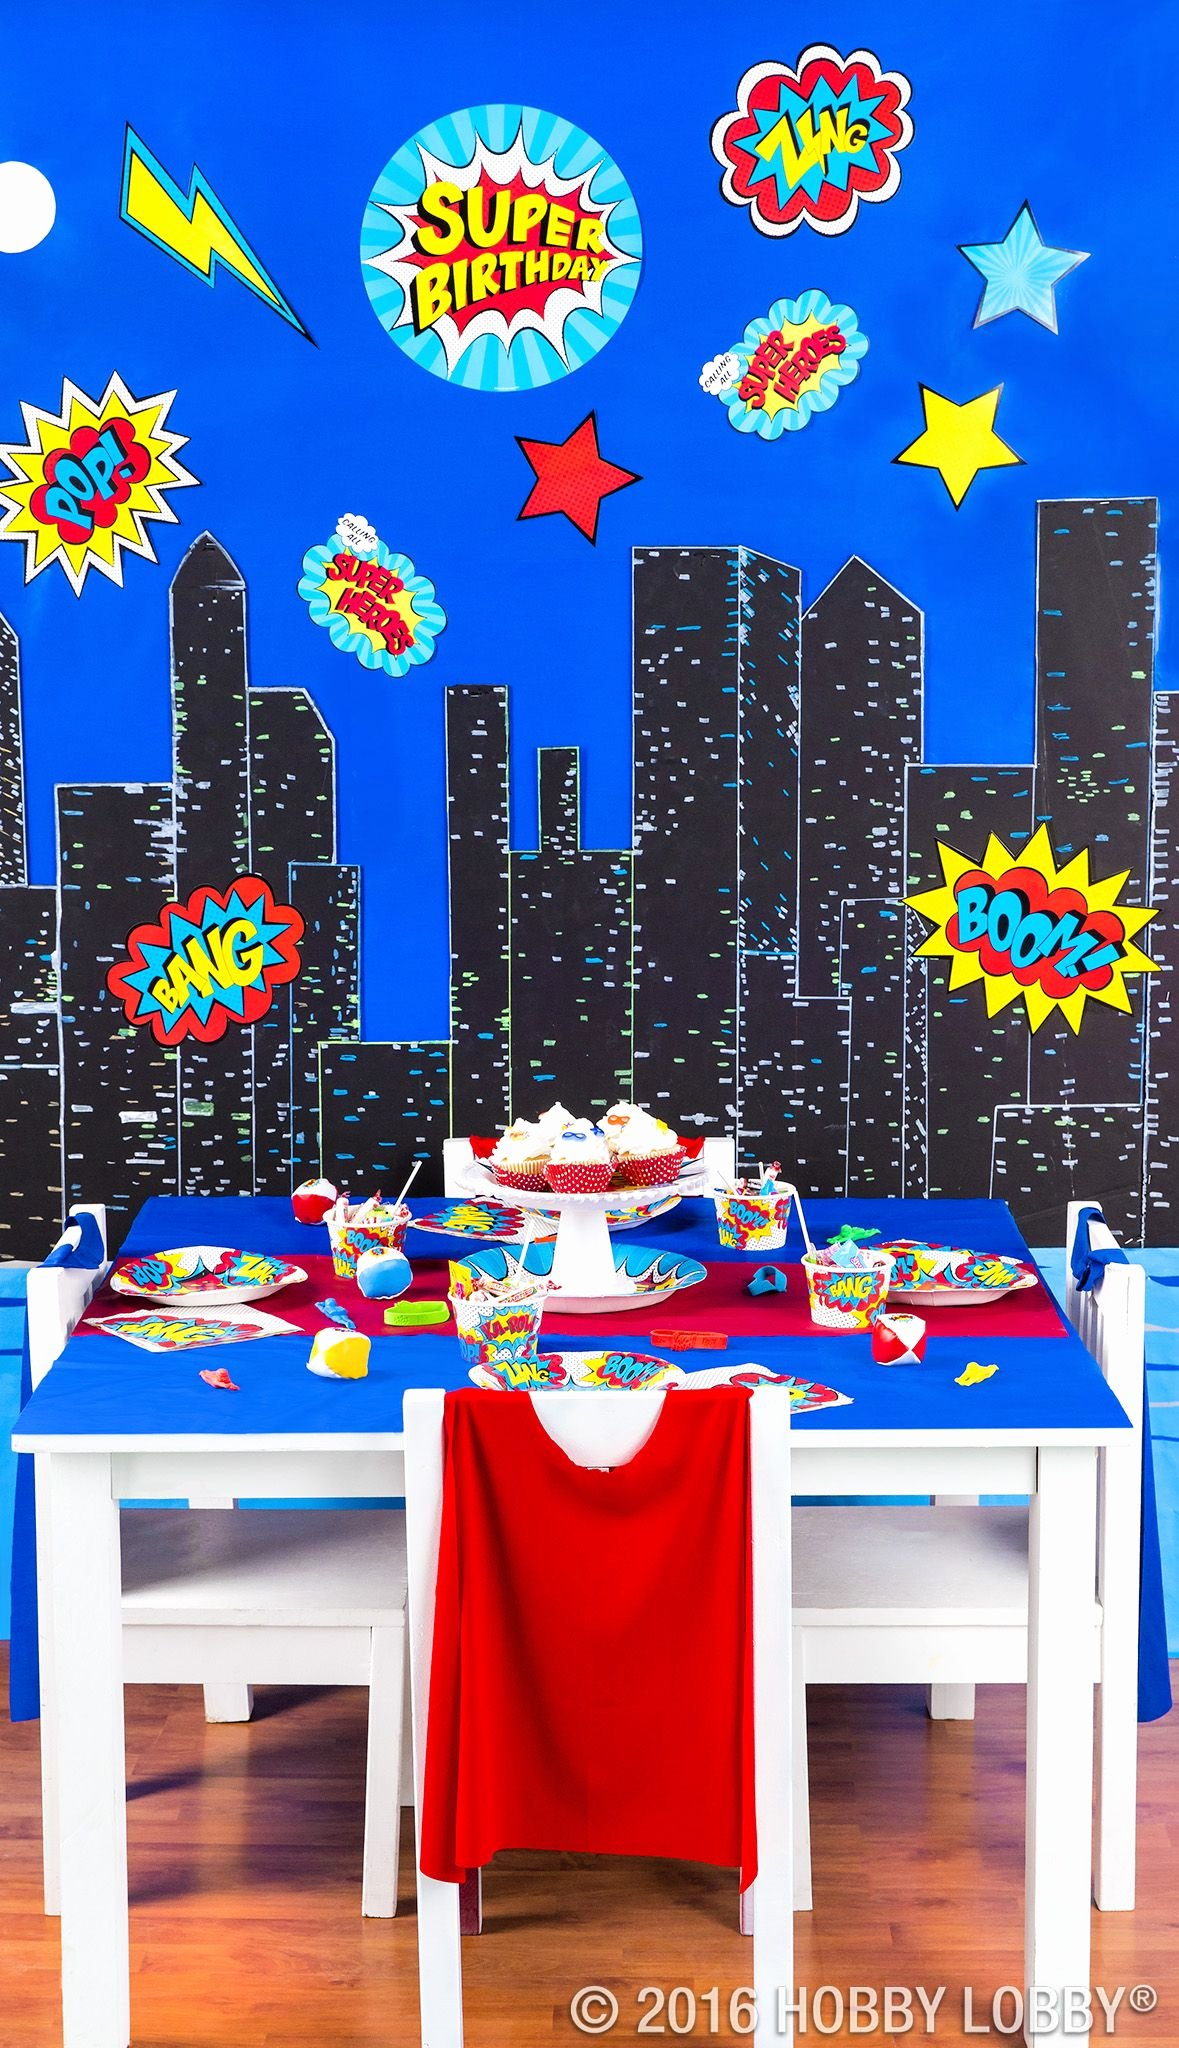 Superhero Birthday Decoration Ideas Best Of Boom Pow Save the World with Your Superhero themed Party